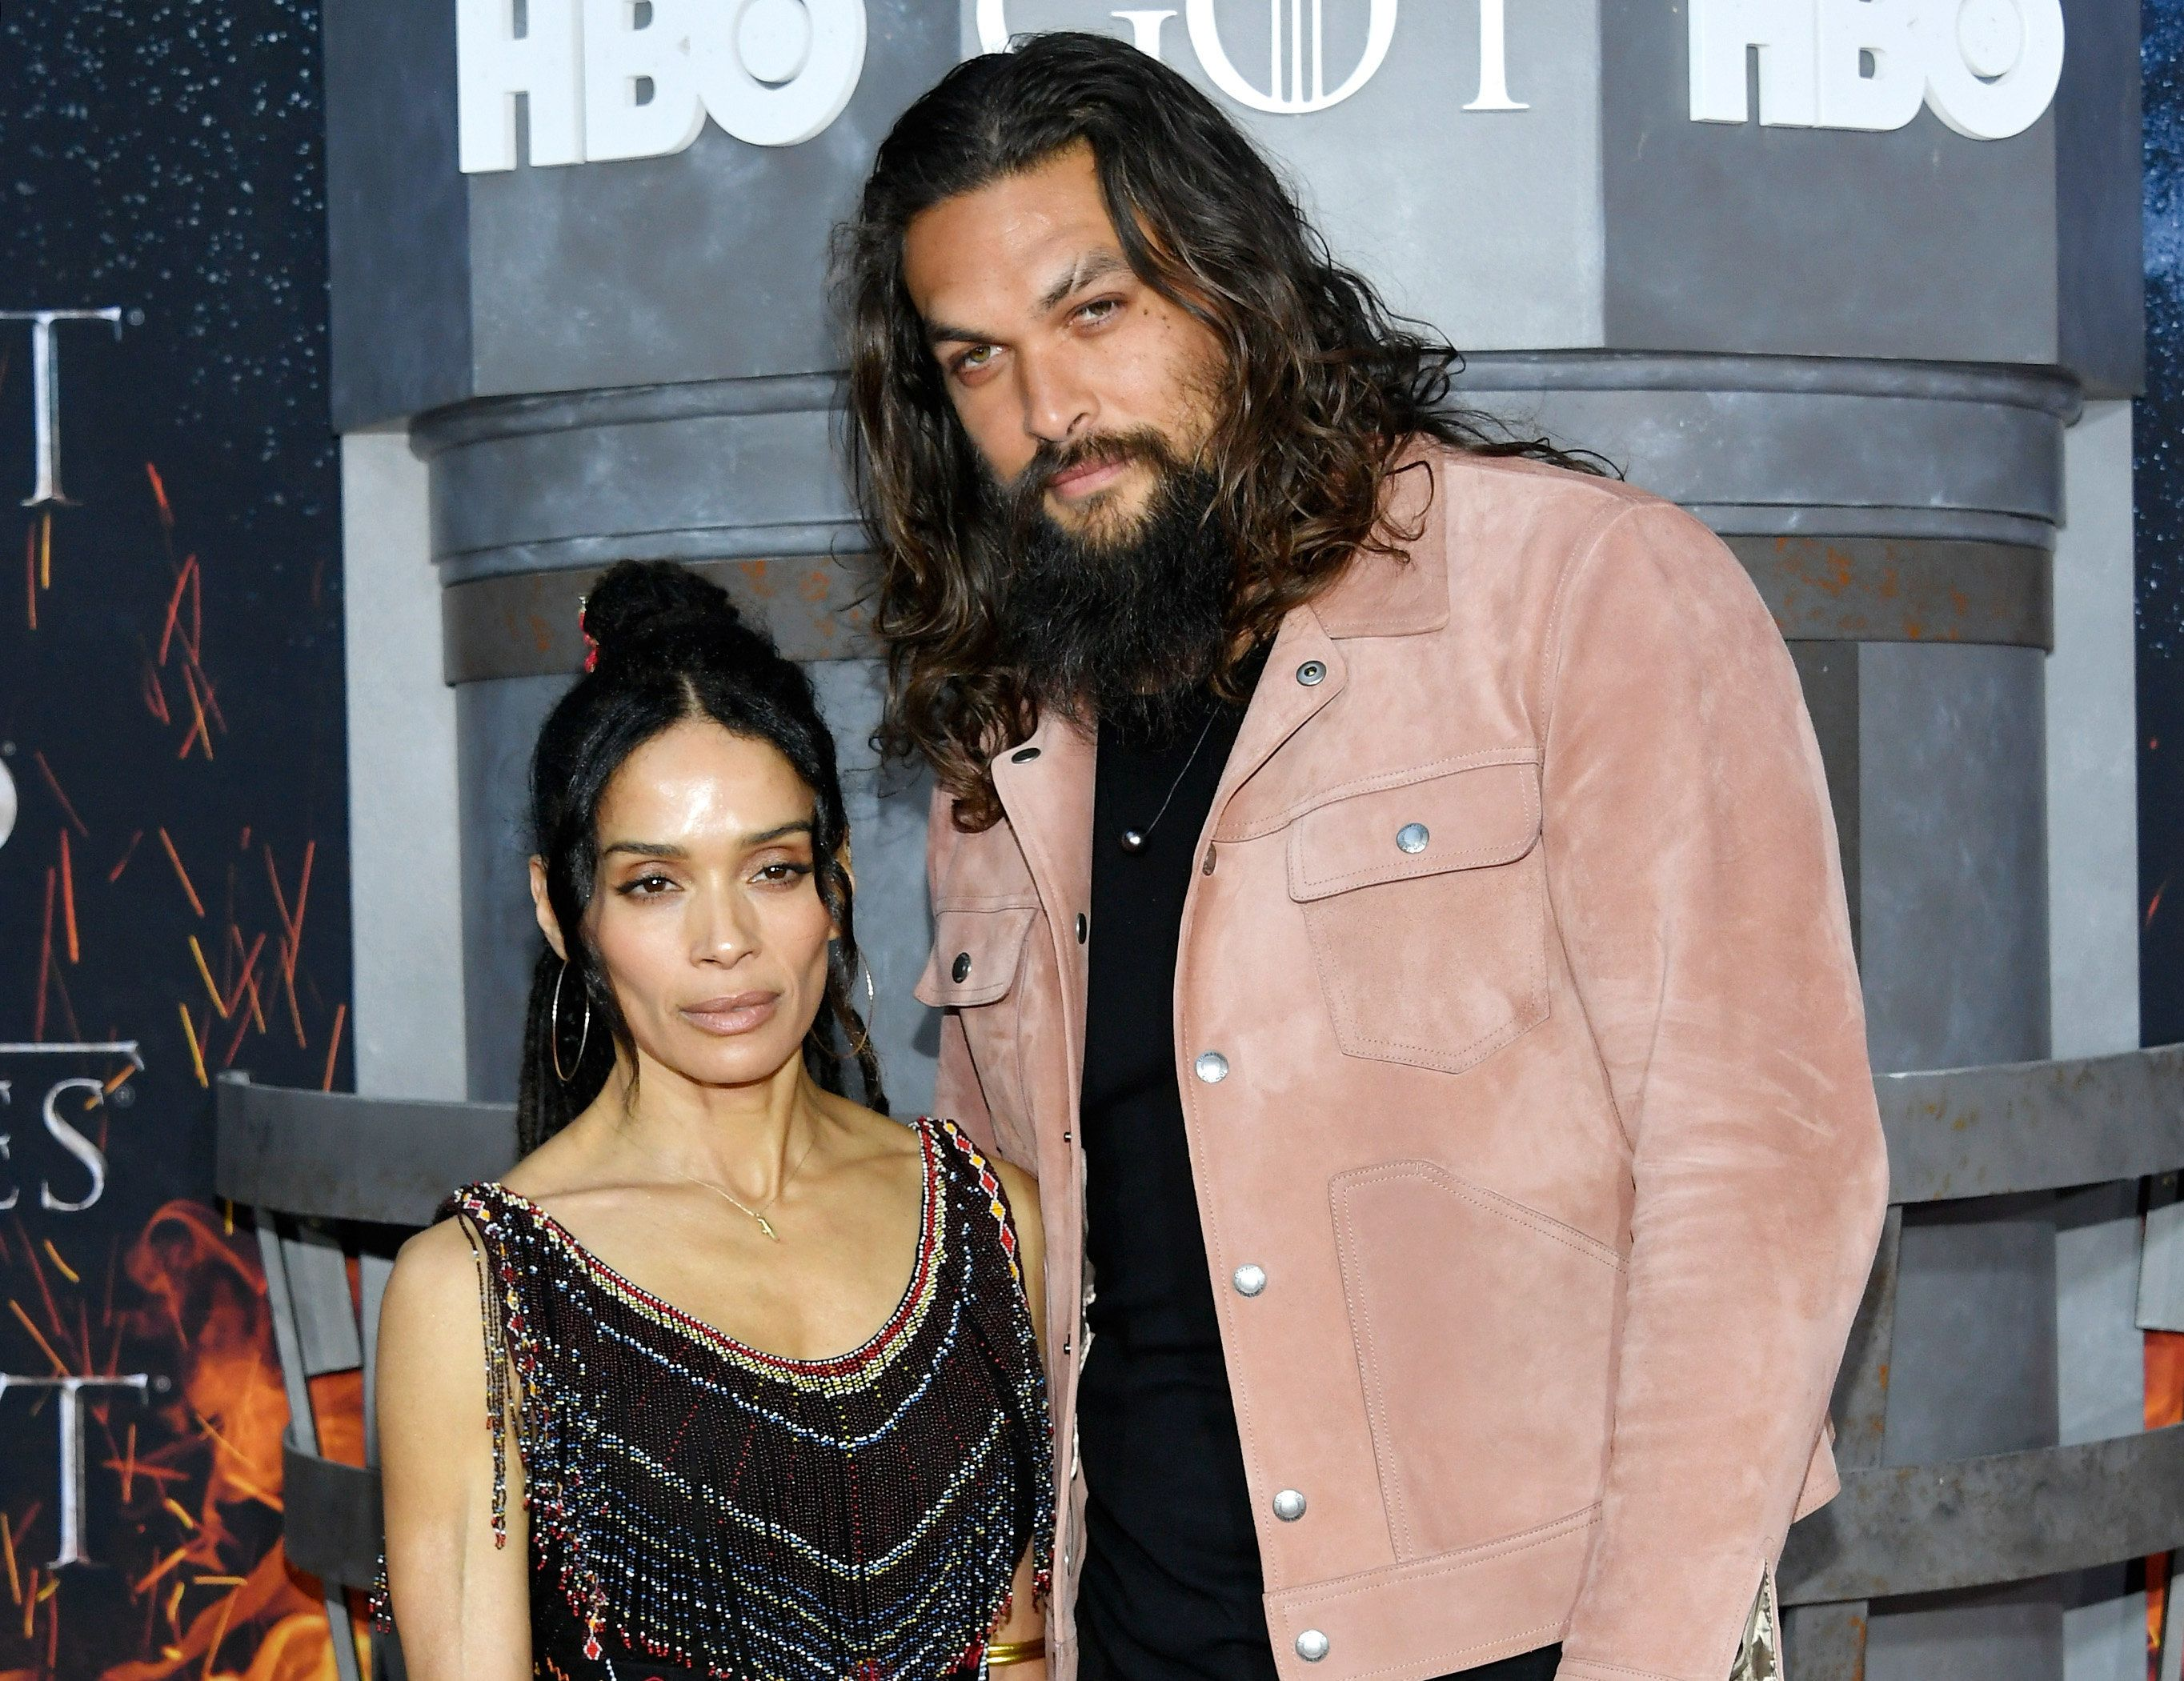 NEW YORK, NY - APRIL 03:  Lisa Bonet and Jason Momoa attend the 'Game Of Thrones' season 8 premiere on April 3, 2019 in New York City.  (Photo by Mike Coppola/FilmMagic)